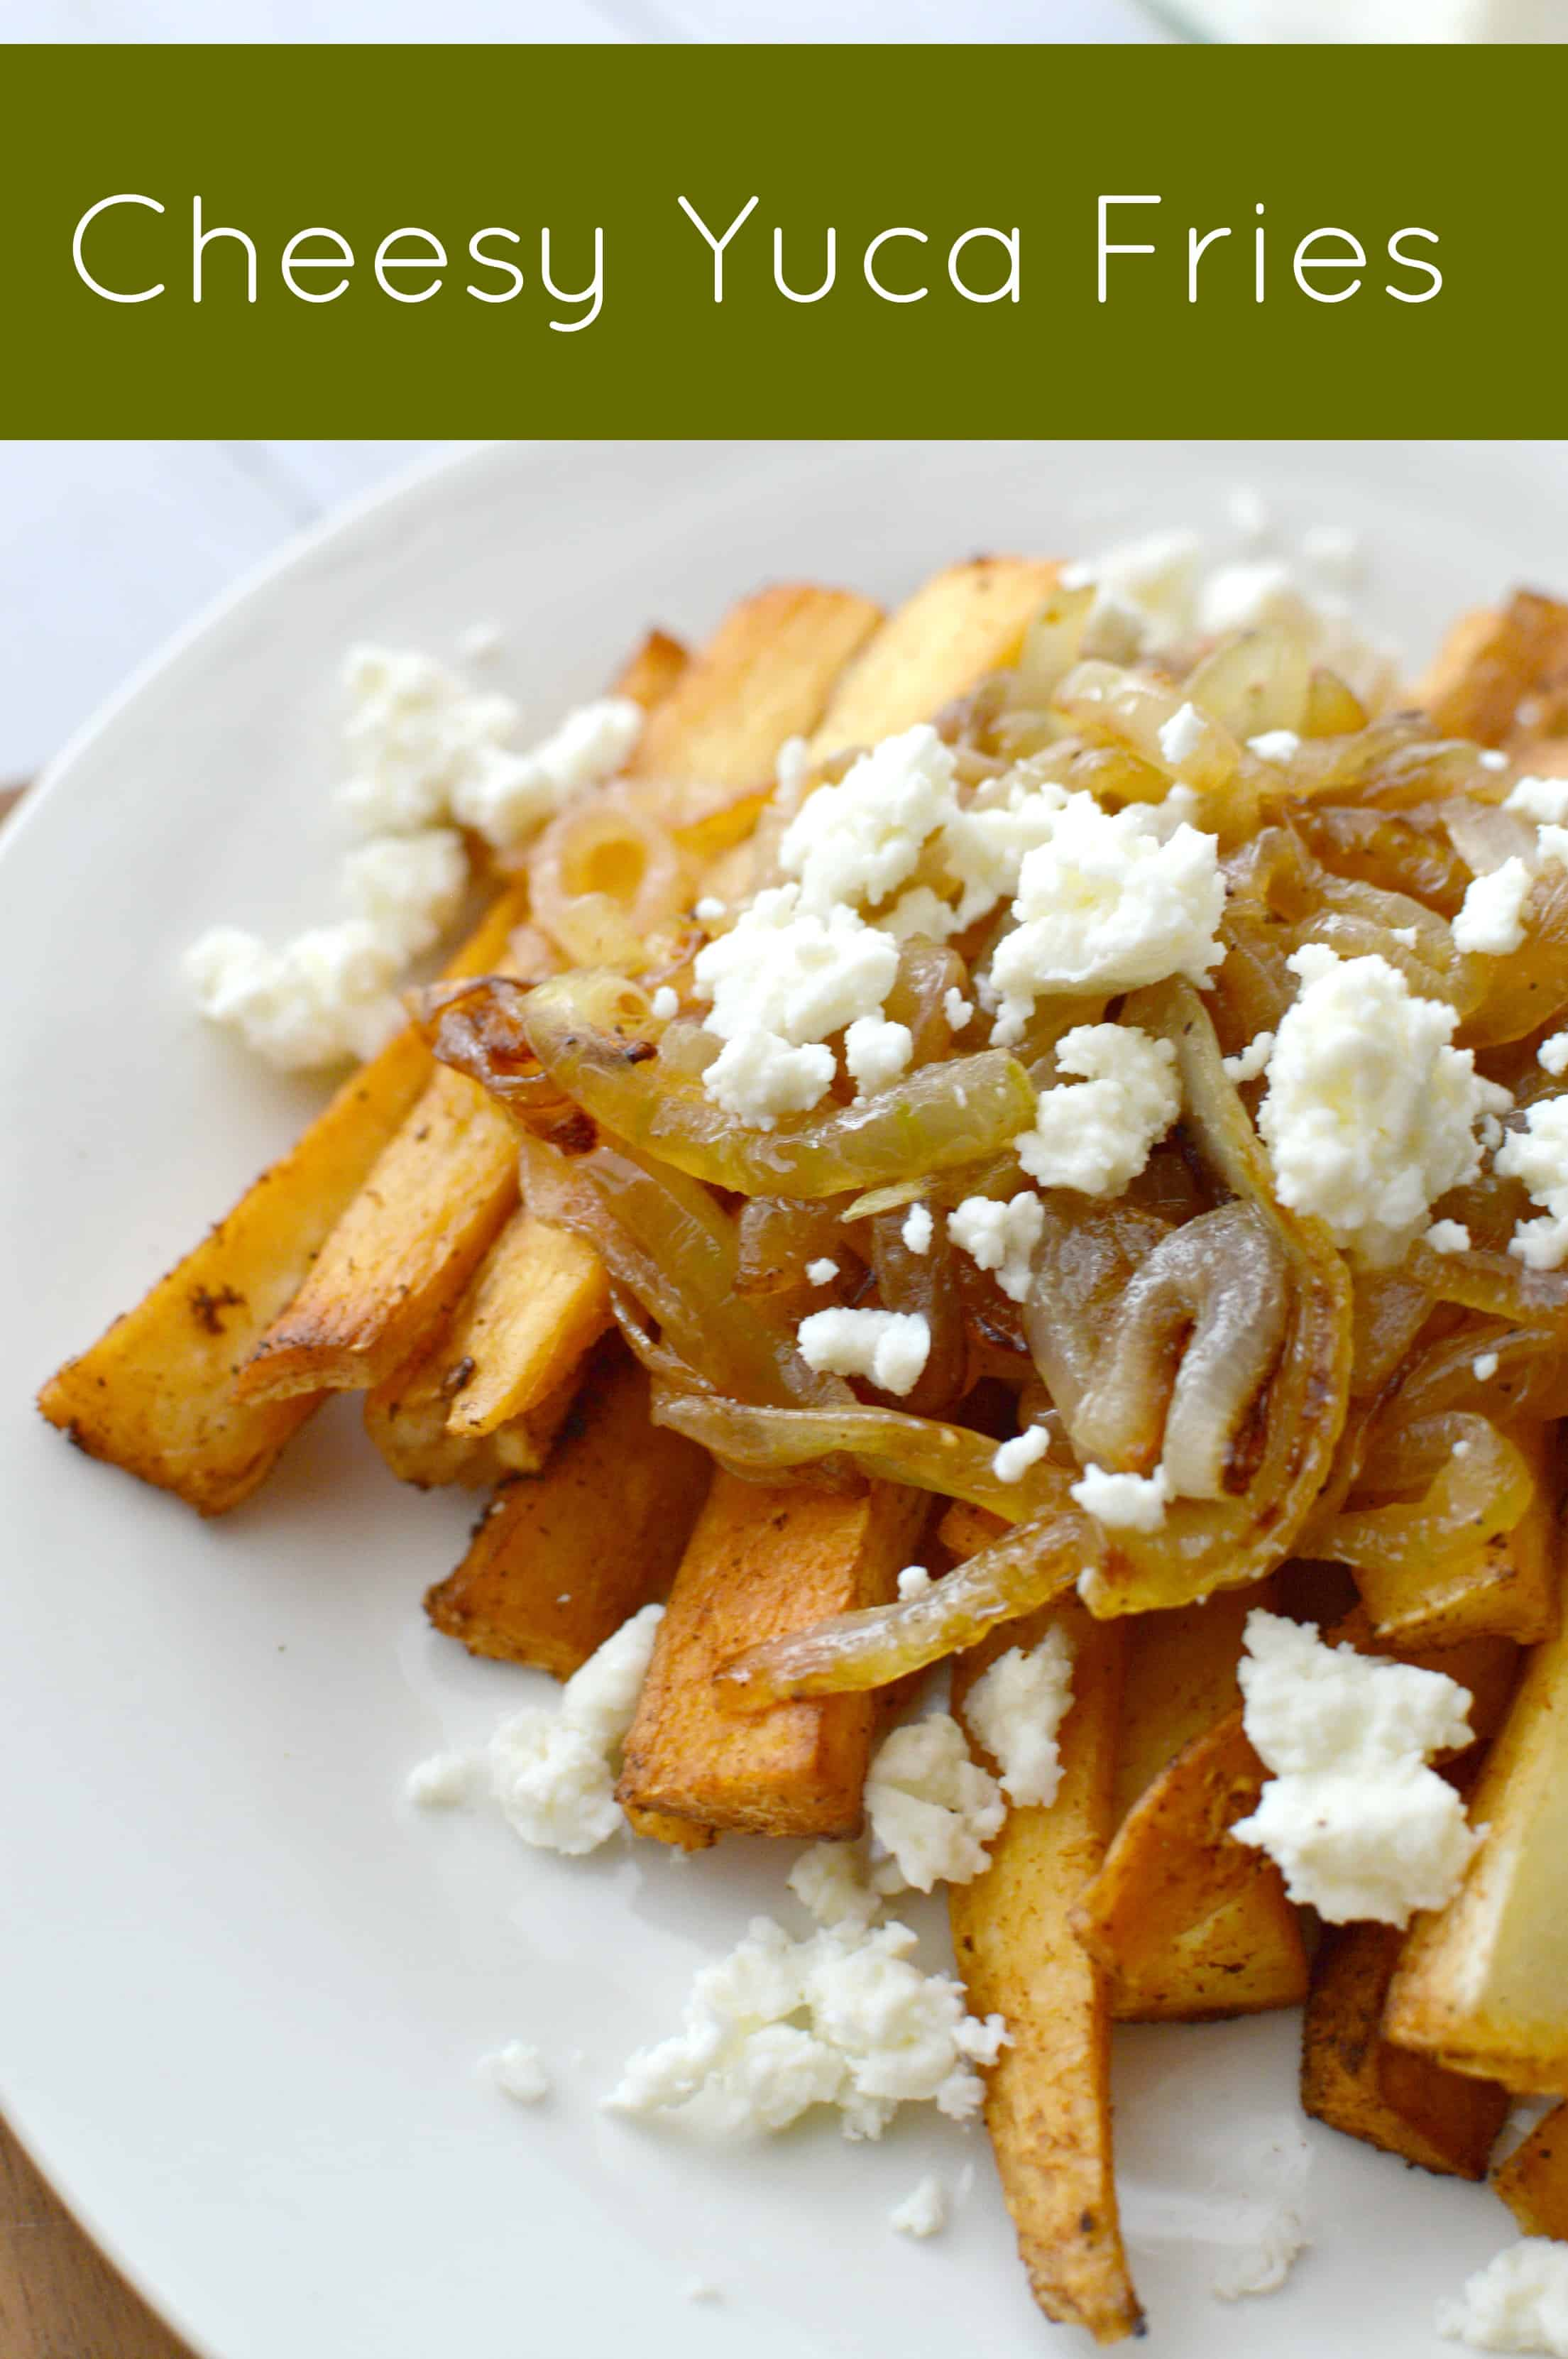 Easy To Make Cheesy Yuca Fries